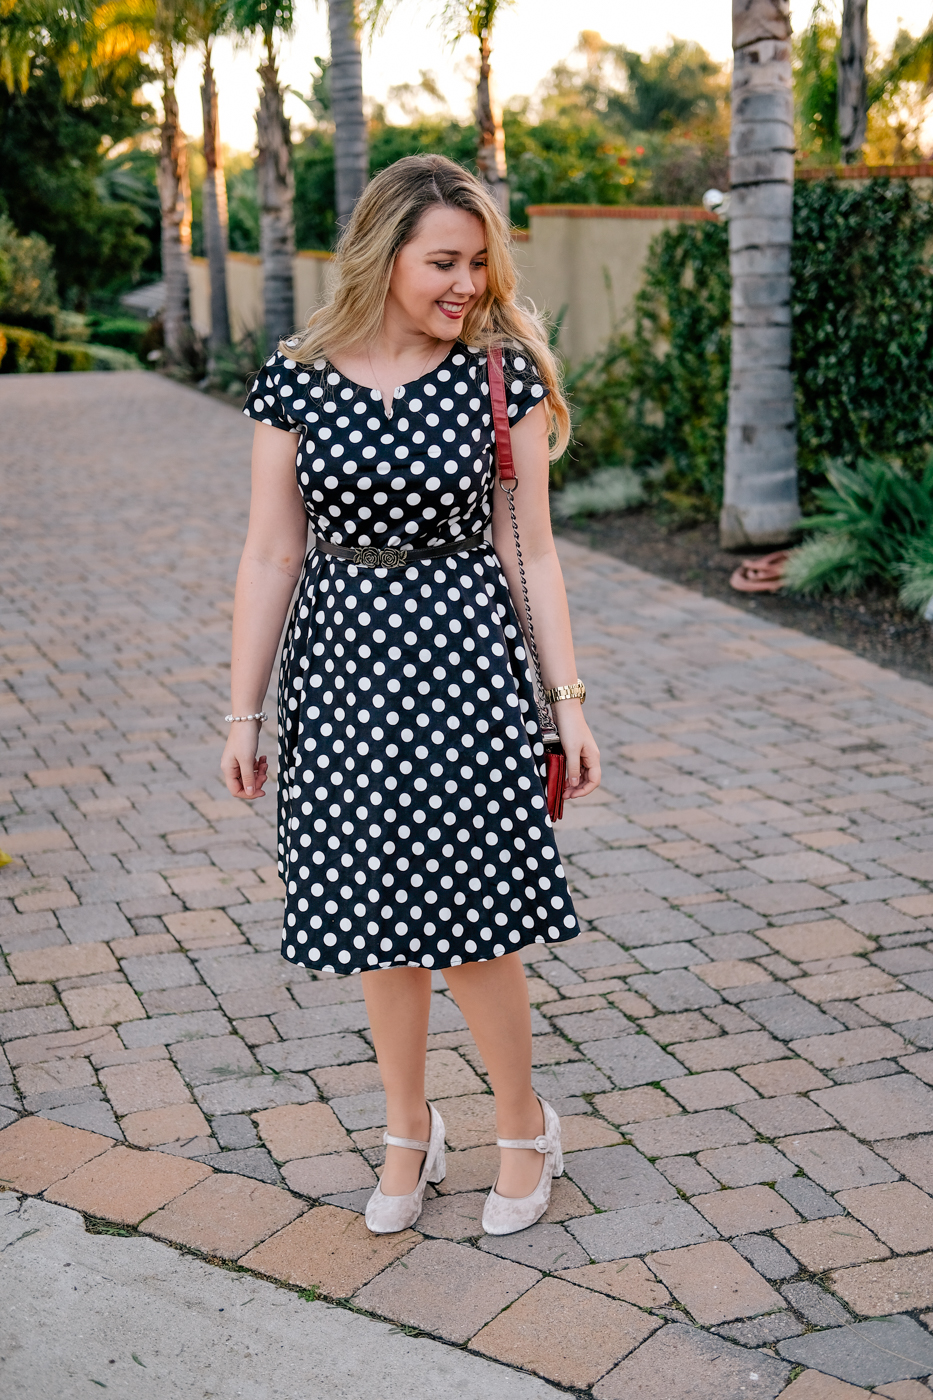 Debora Dahl wearing a black polka dot dress from sammydress